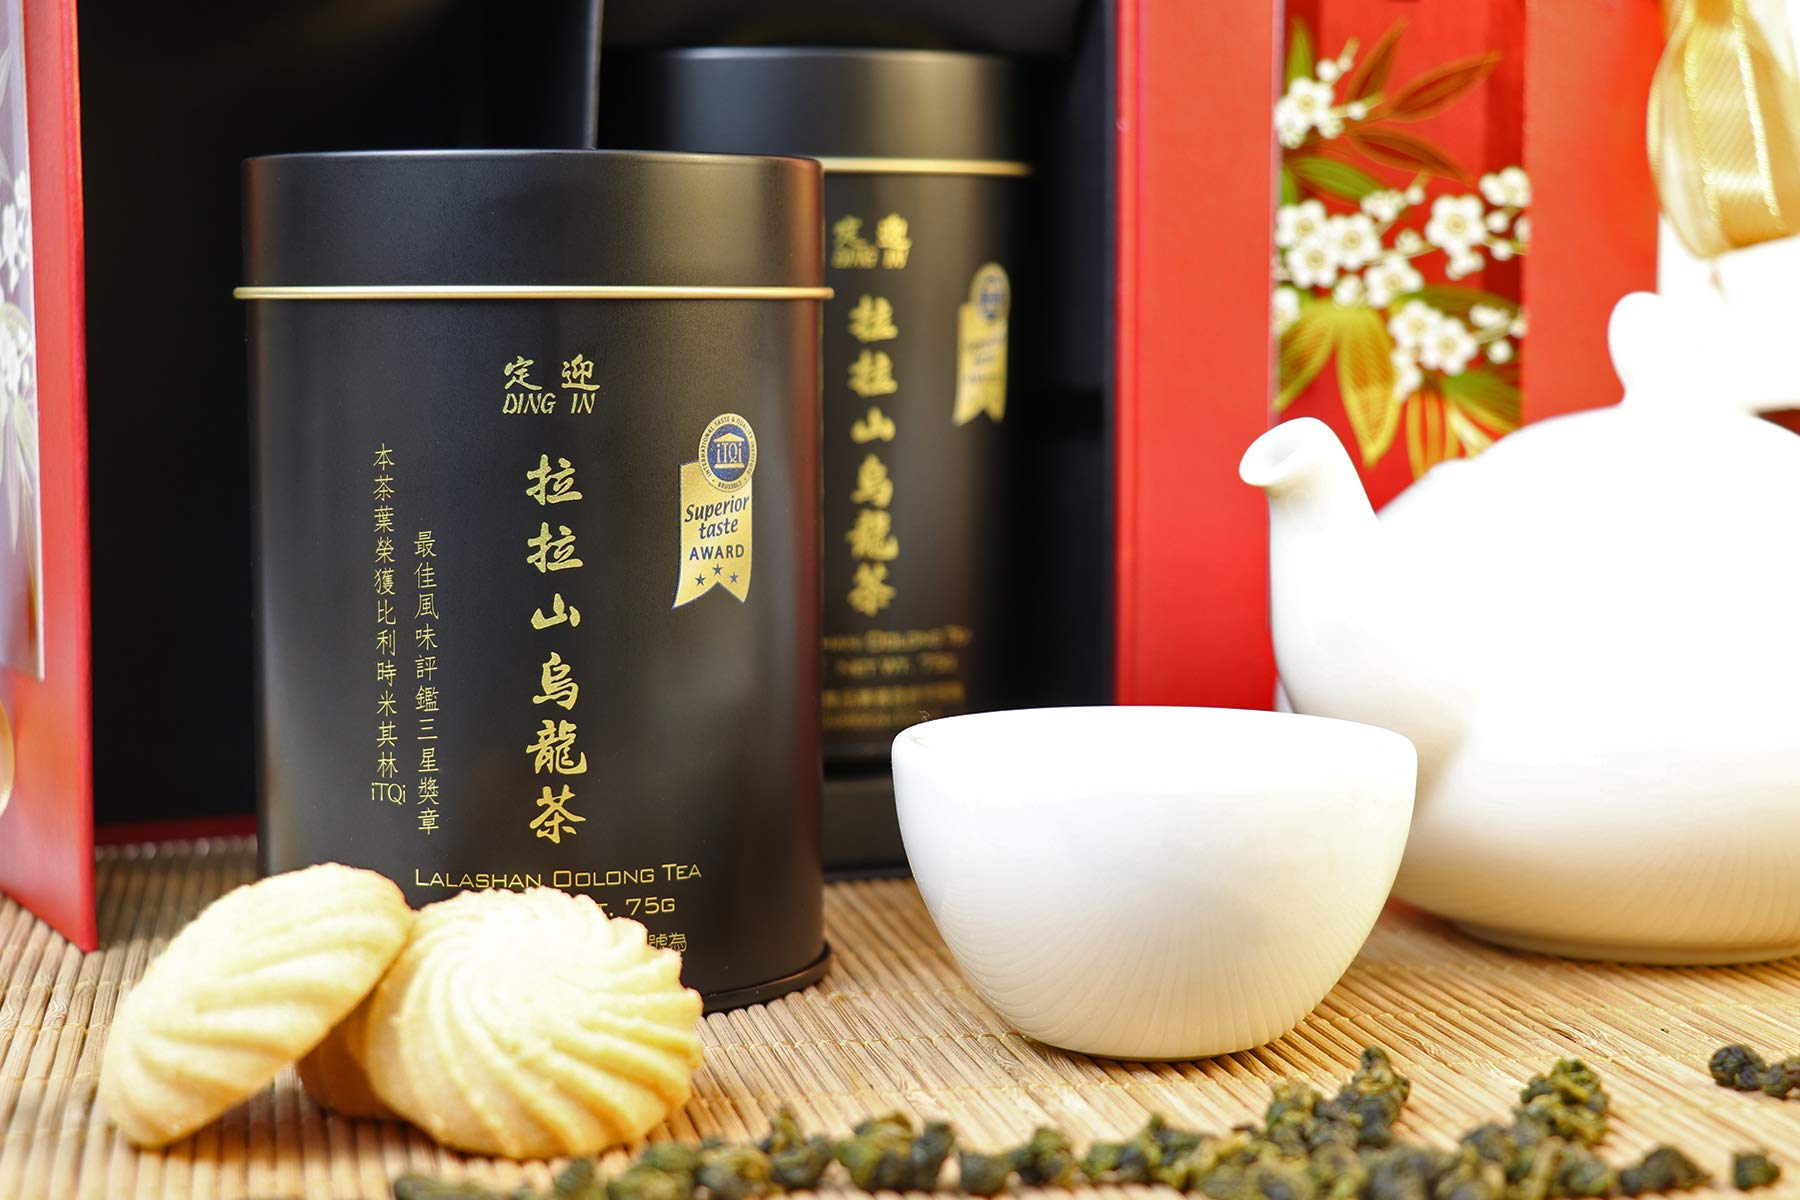 DING IN Lalashan Oolong Tea Feast Straight Gift Box 75g/2cans by Ding In ltd. (Image #4)